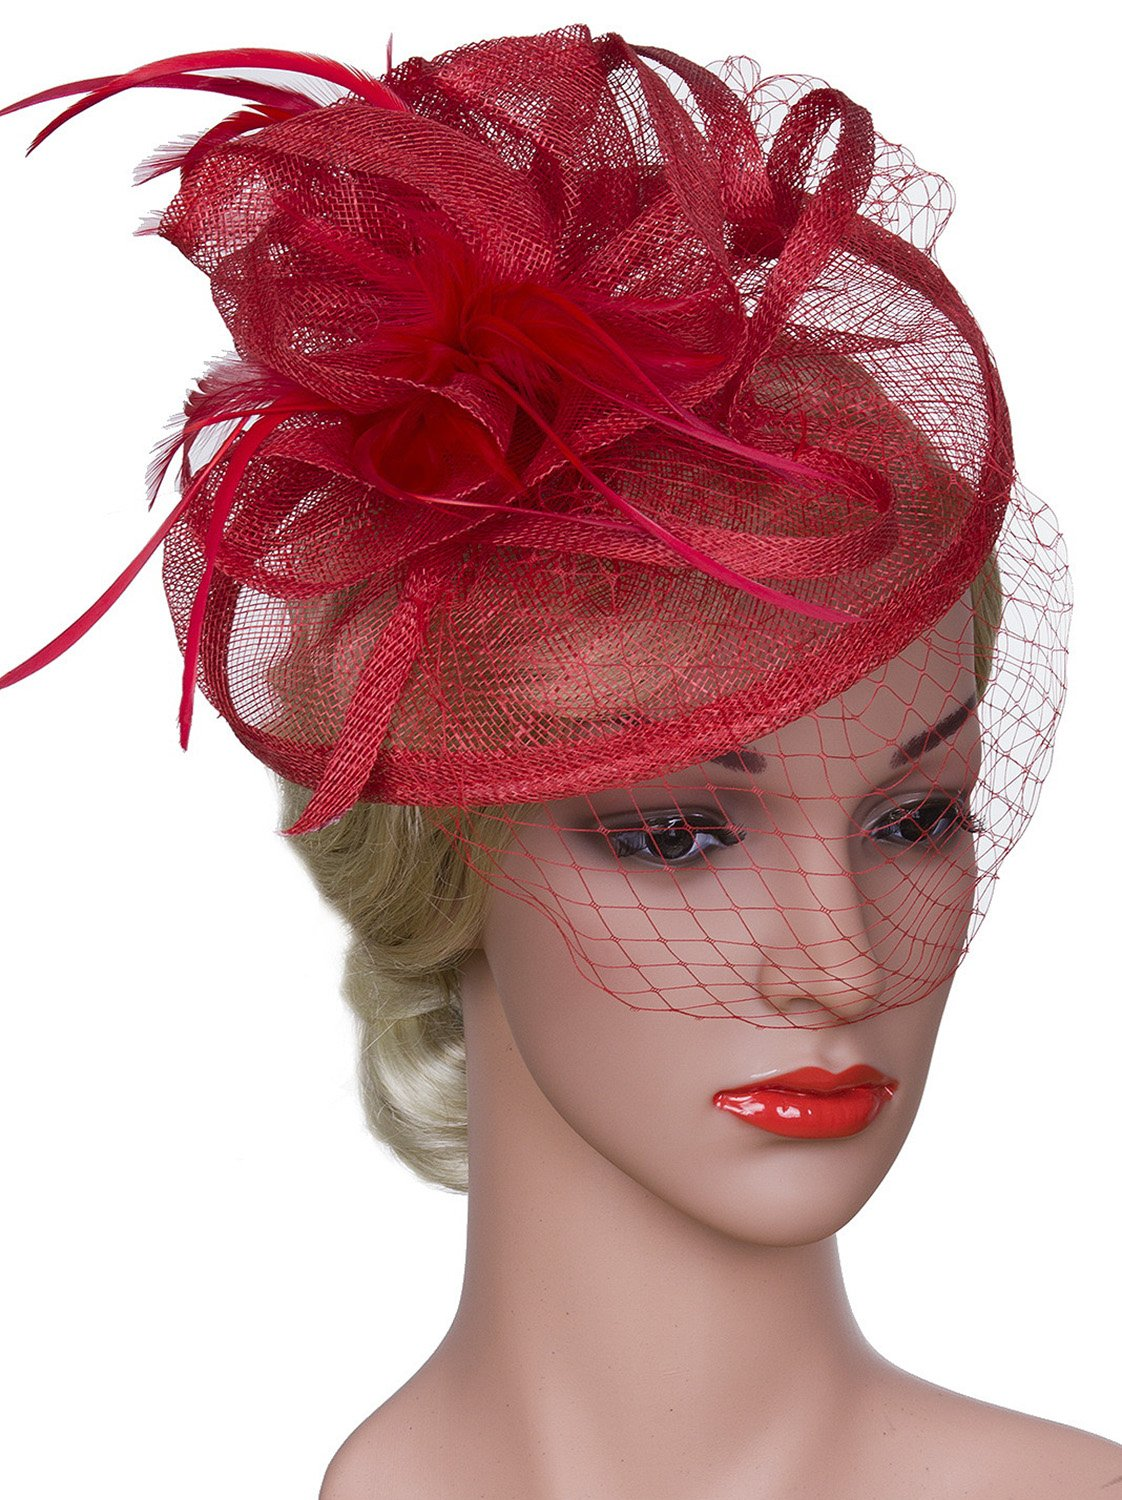 Vijiv Women Vintage Derby Fascinator Hat With Veil Pillbox Headband Feather Cocktail Tea Party, Red, One Size